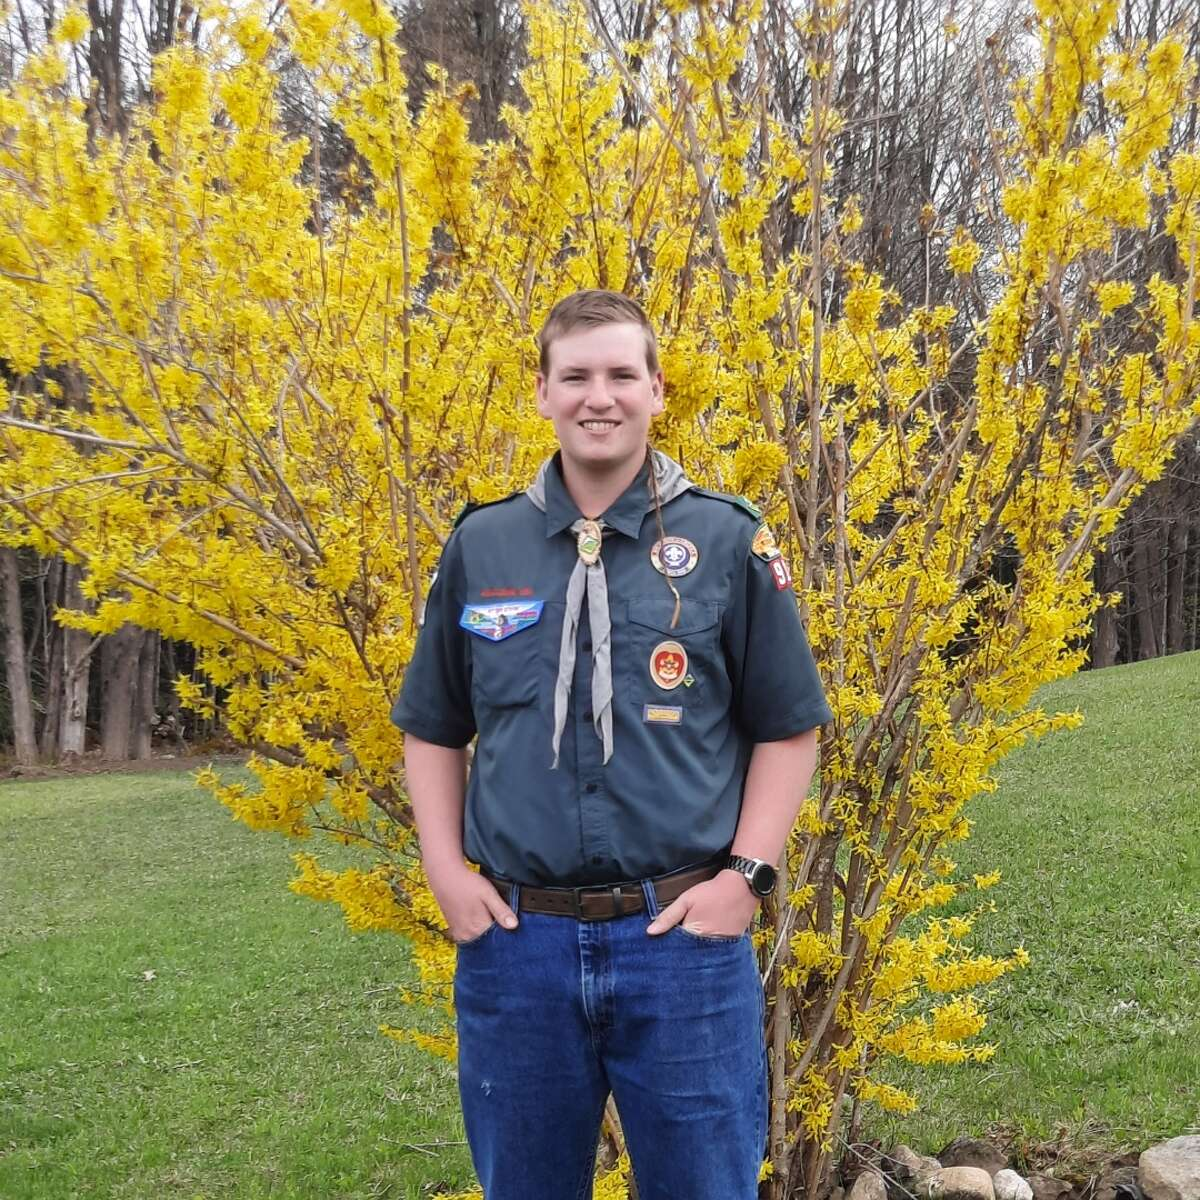 Johnstown Junior Konner Mancini has chosen the Johnstown Junior-Senior High School as the site for his Eagle Scout project with the Boy Scouts of America. Mancini's tree planting celebrates the strength and resiliency that Johnstown educators, staff and students have shown throughout the past year of the pandemic. The 12-foot white oak donated in part by Bob's Trees in Hagaman symbolizes strength and perseverance, with a plaque donated by Letter Memorial in Johnstown recognizes the adversities that the school community overcame this past year. Konner is the son of Linette and Frank Mancini. He is a member of Boy Scout Venturing Crew 3918 of Johnstown where Bruce Lawrence serves as his Eagle Scout coach.